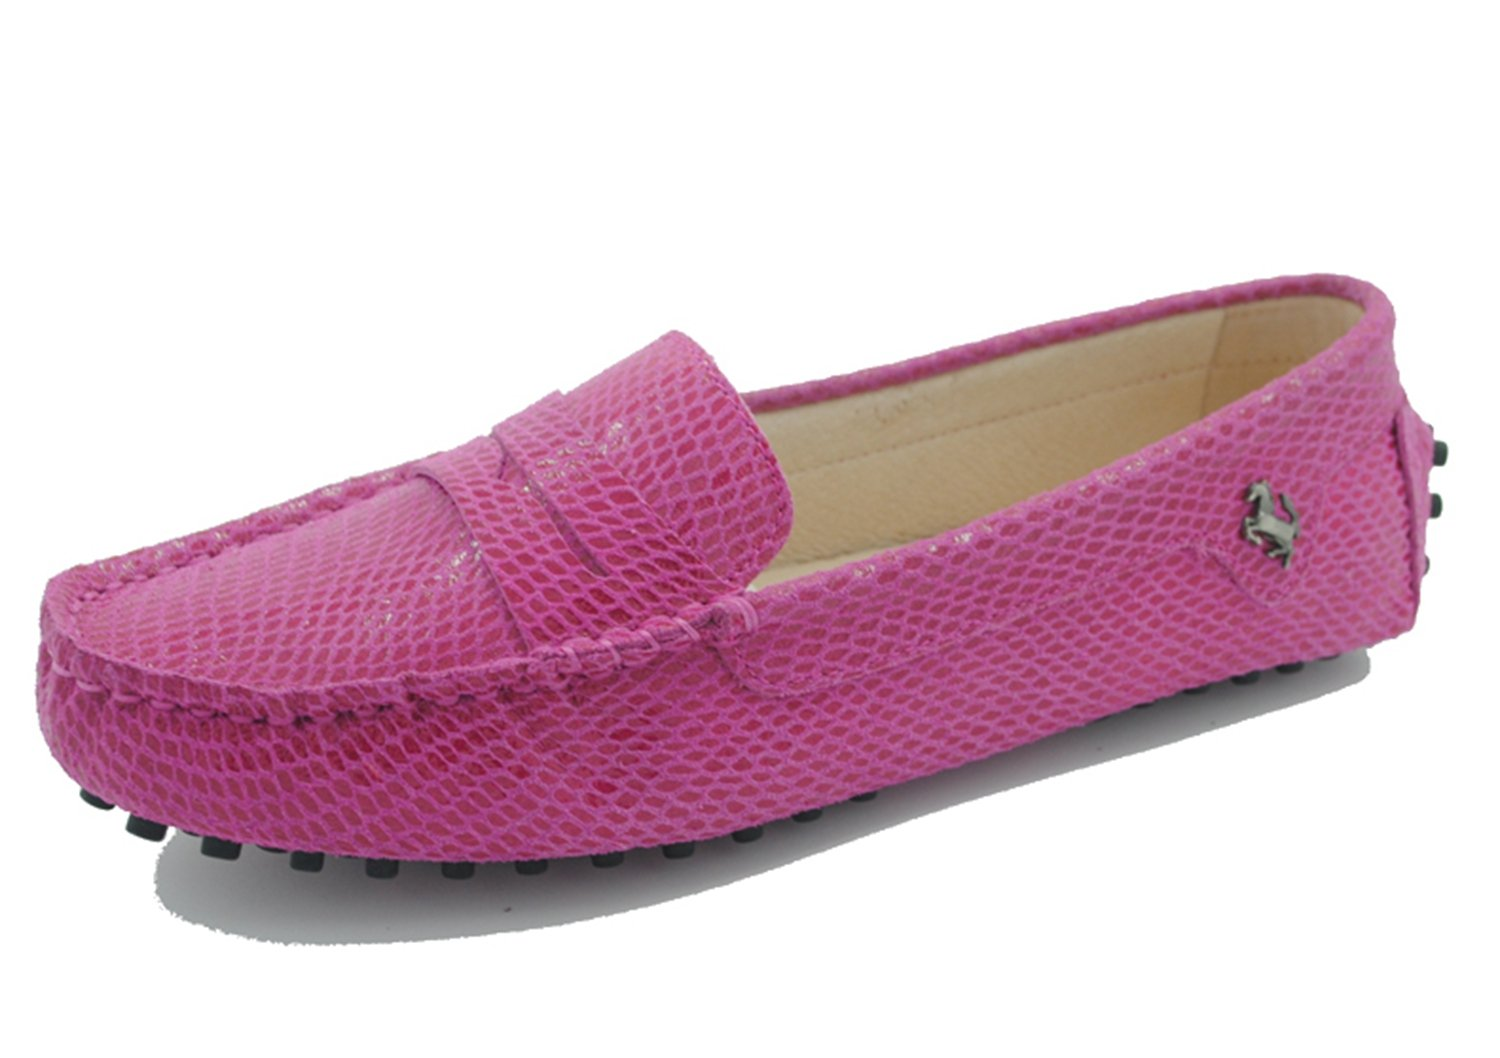 Minitoo Minitoo , Bout fermé Rose femme Rose 5153 Snake-print d358edc - automaticcouplings.space